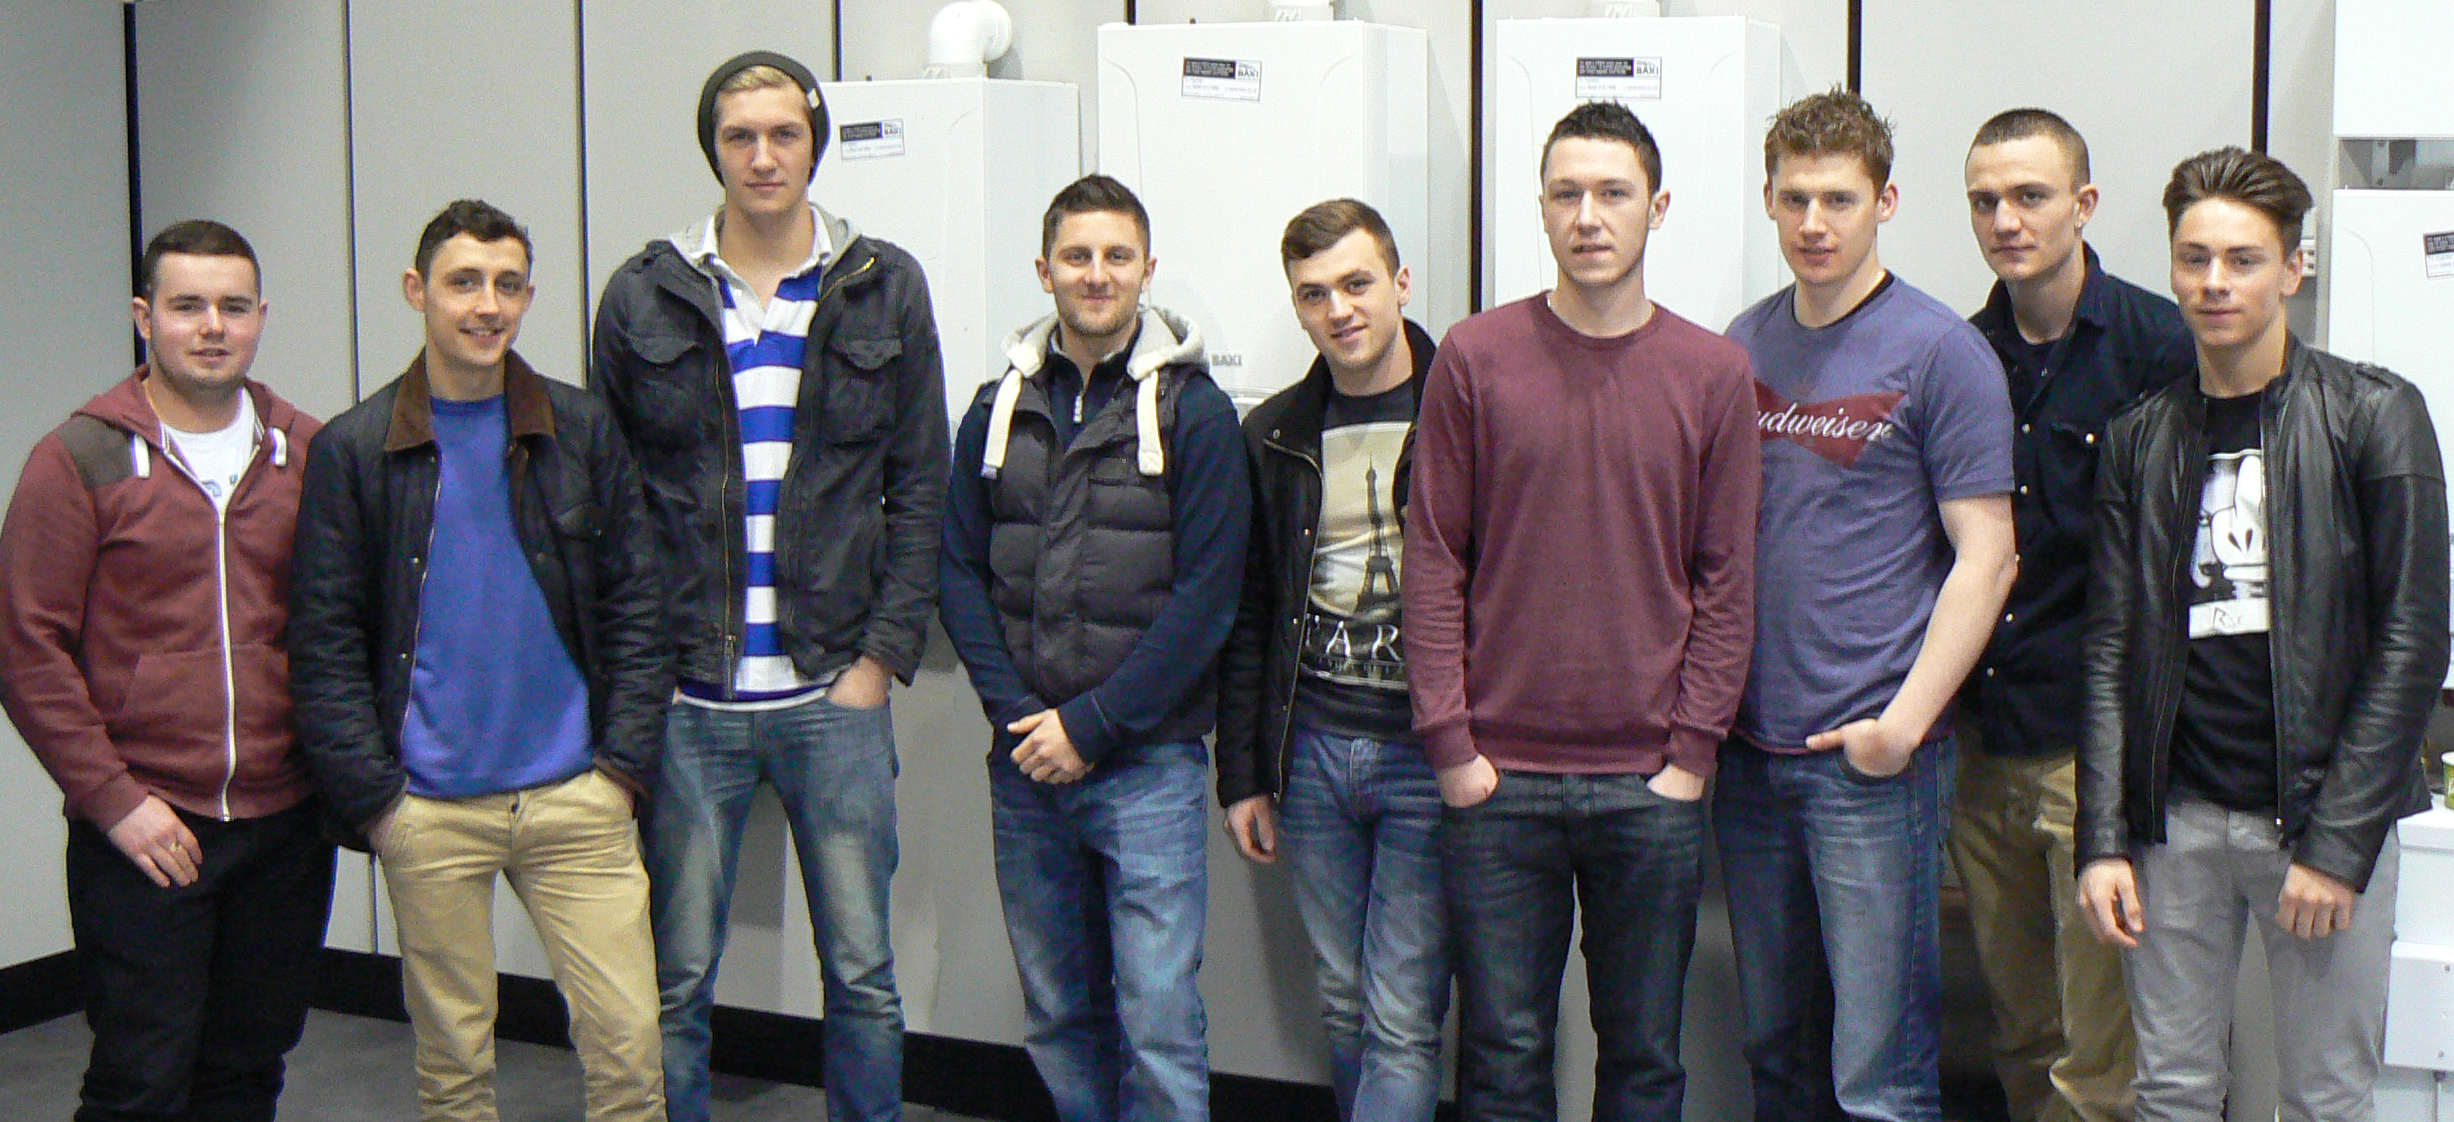 Students that completed NVQ level 3 in April 2013